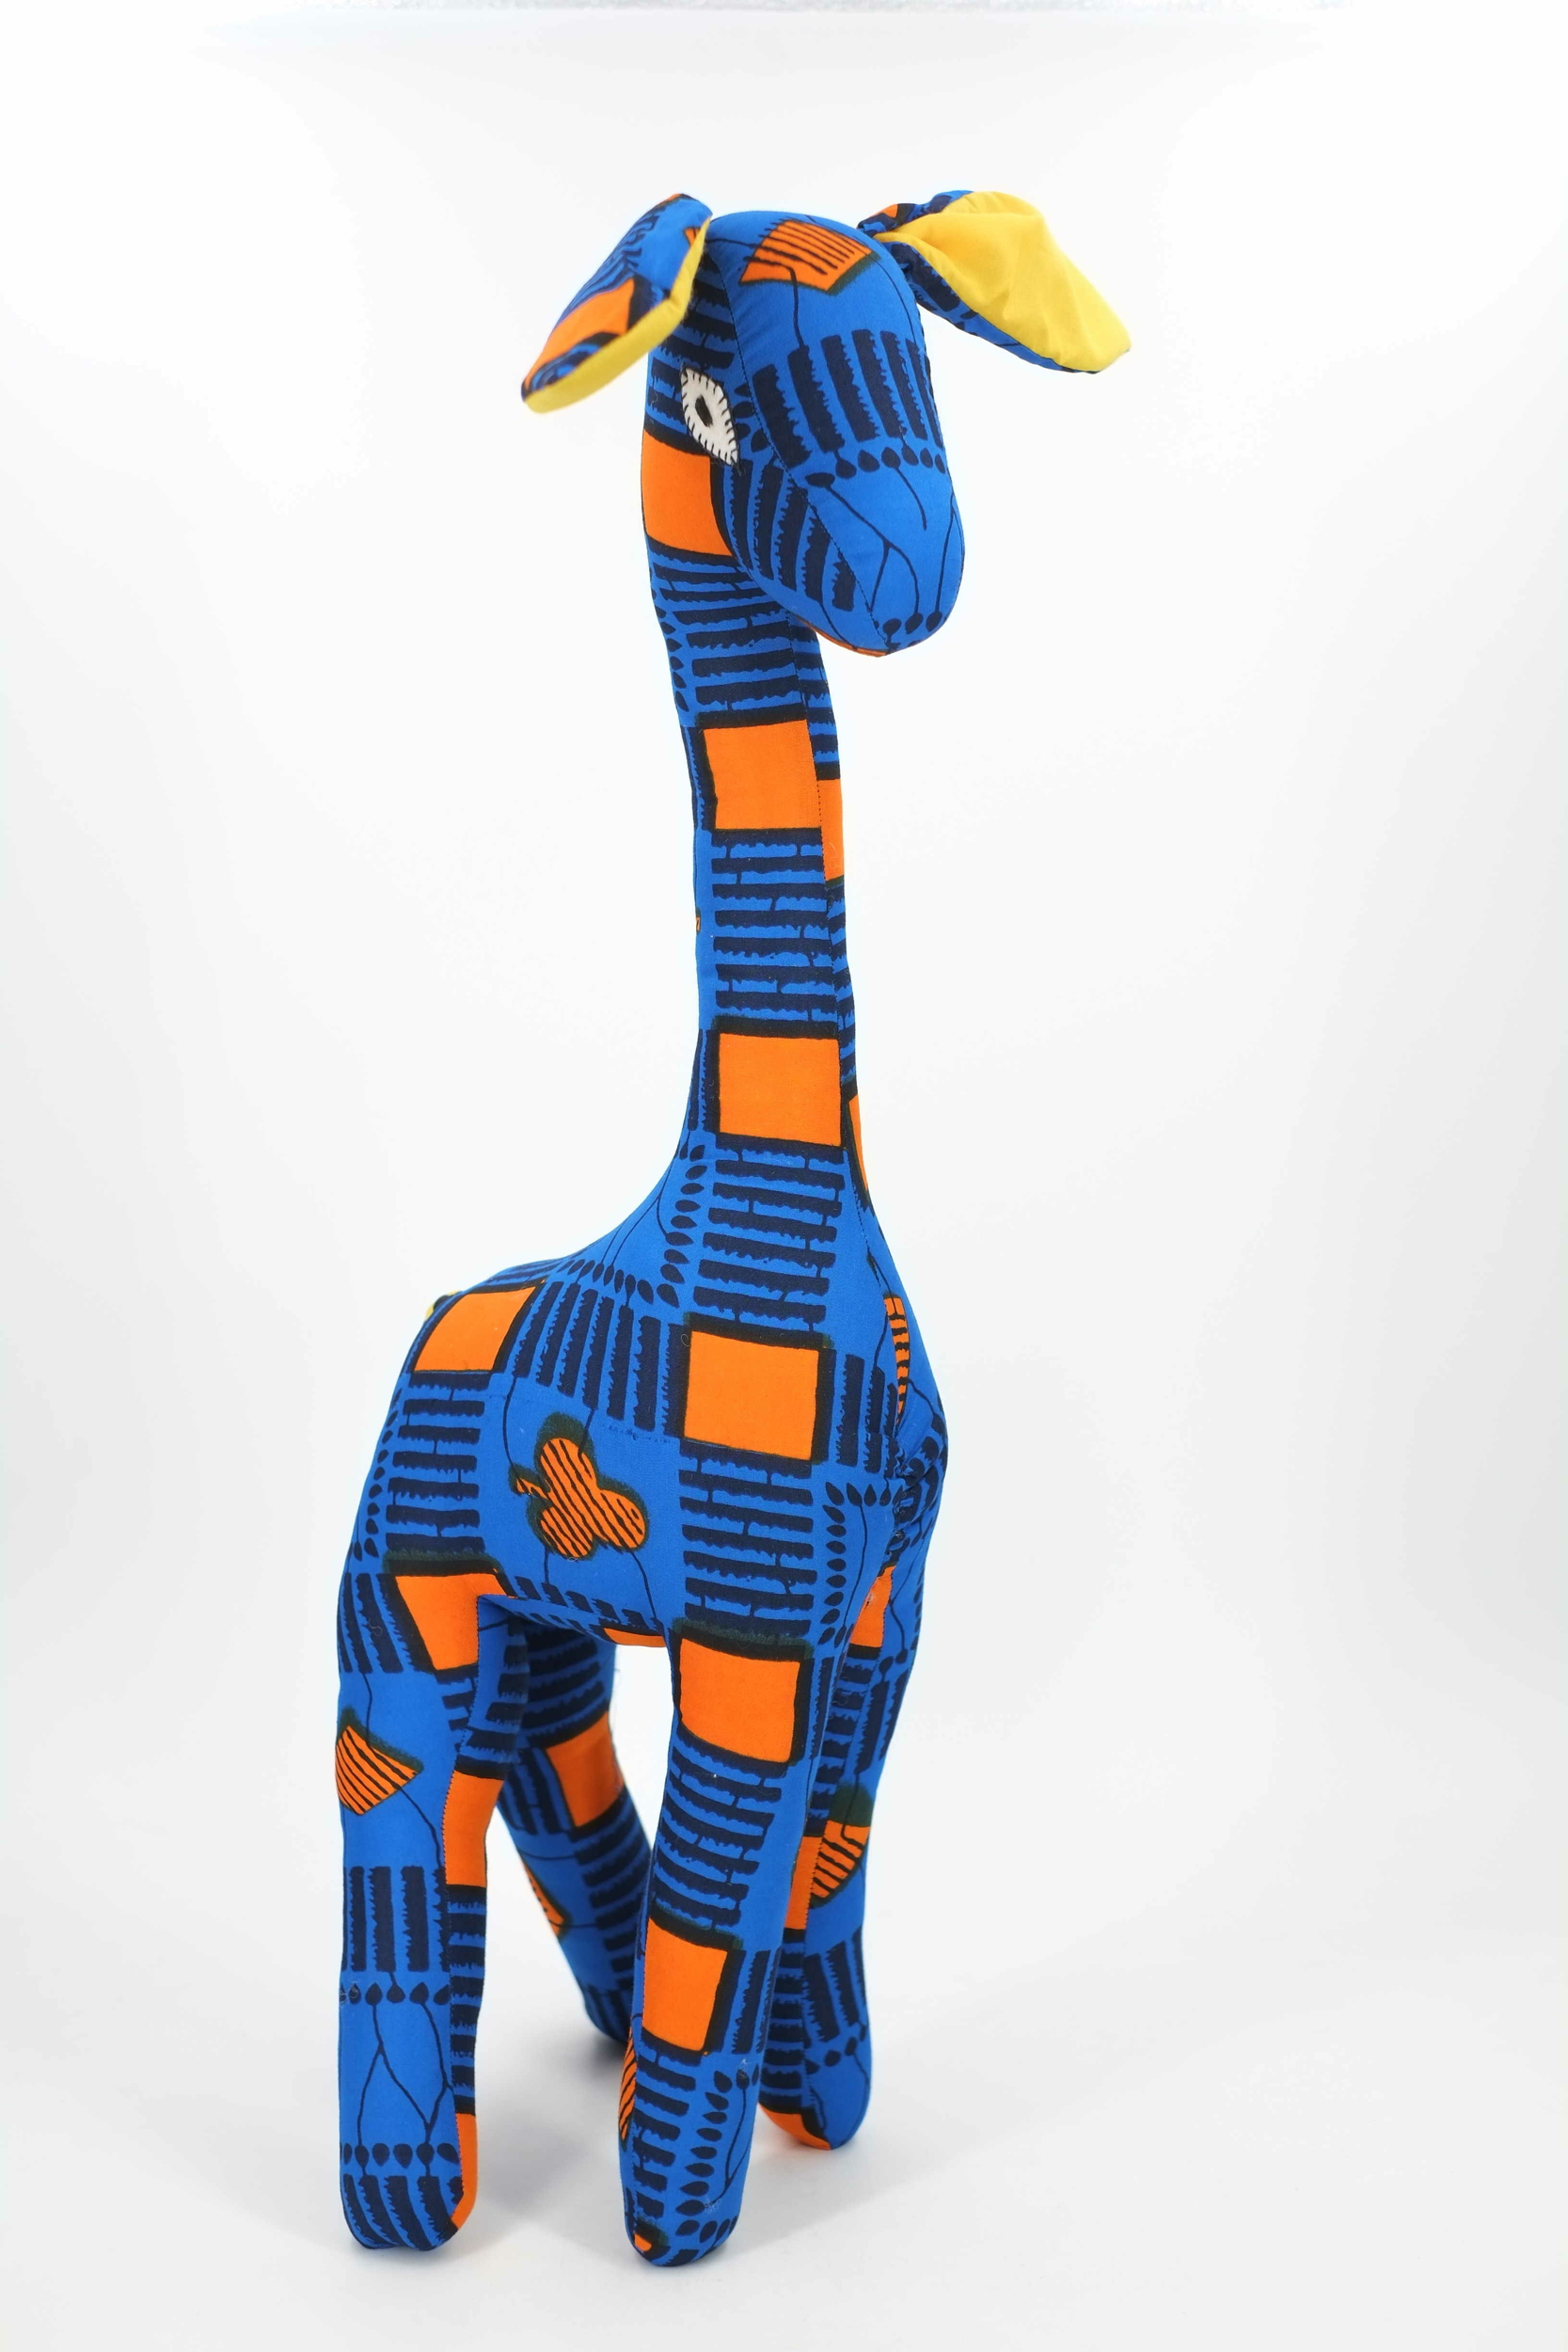 Grande girafe décorative en wax du Sénégal